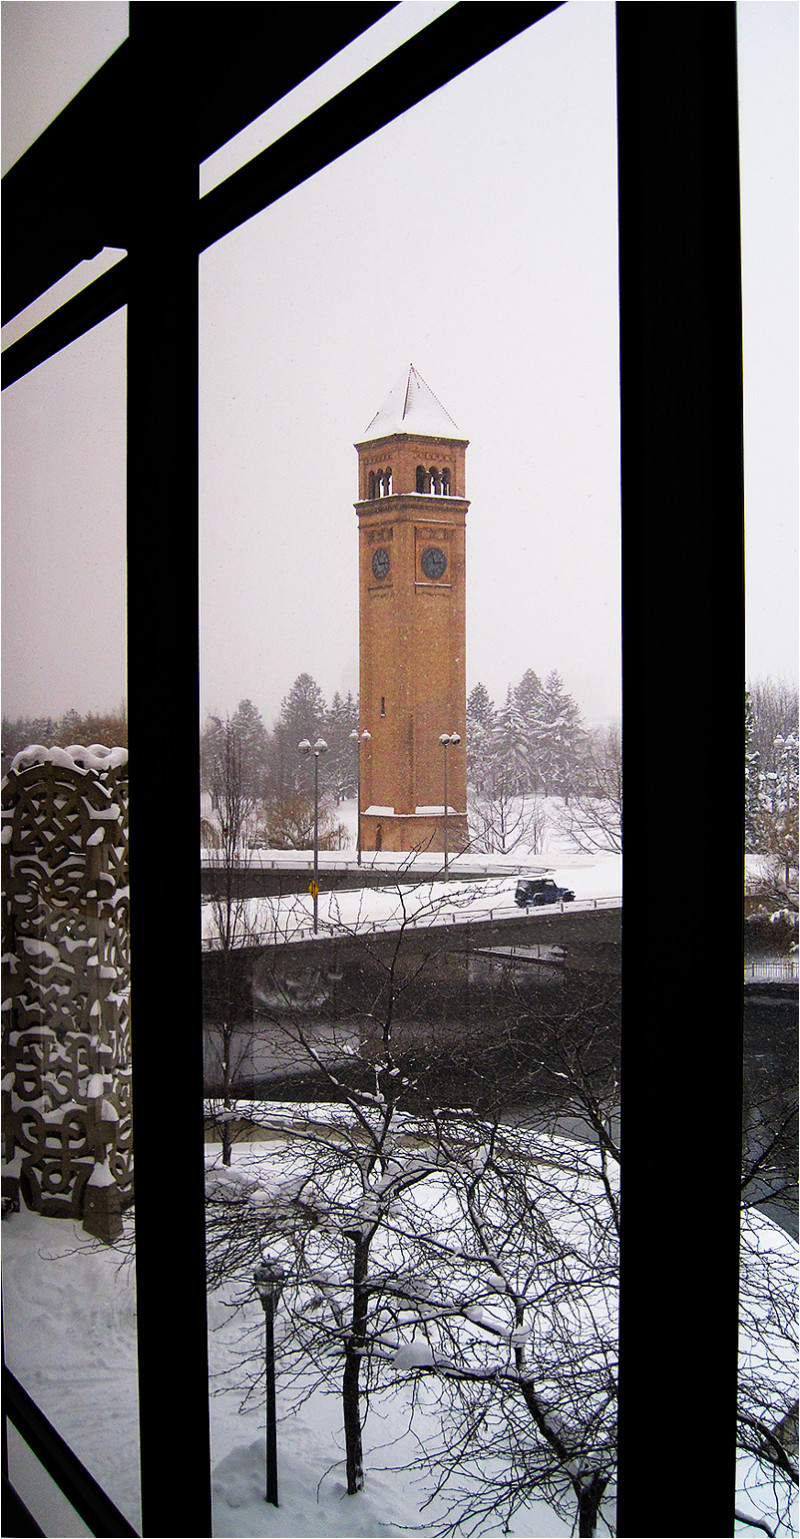 The clock tower in Riverfront Park.